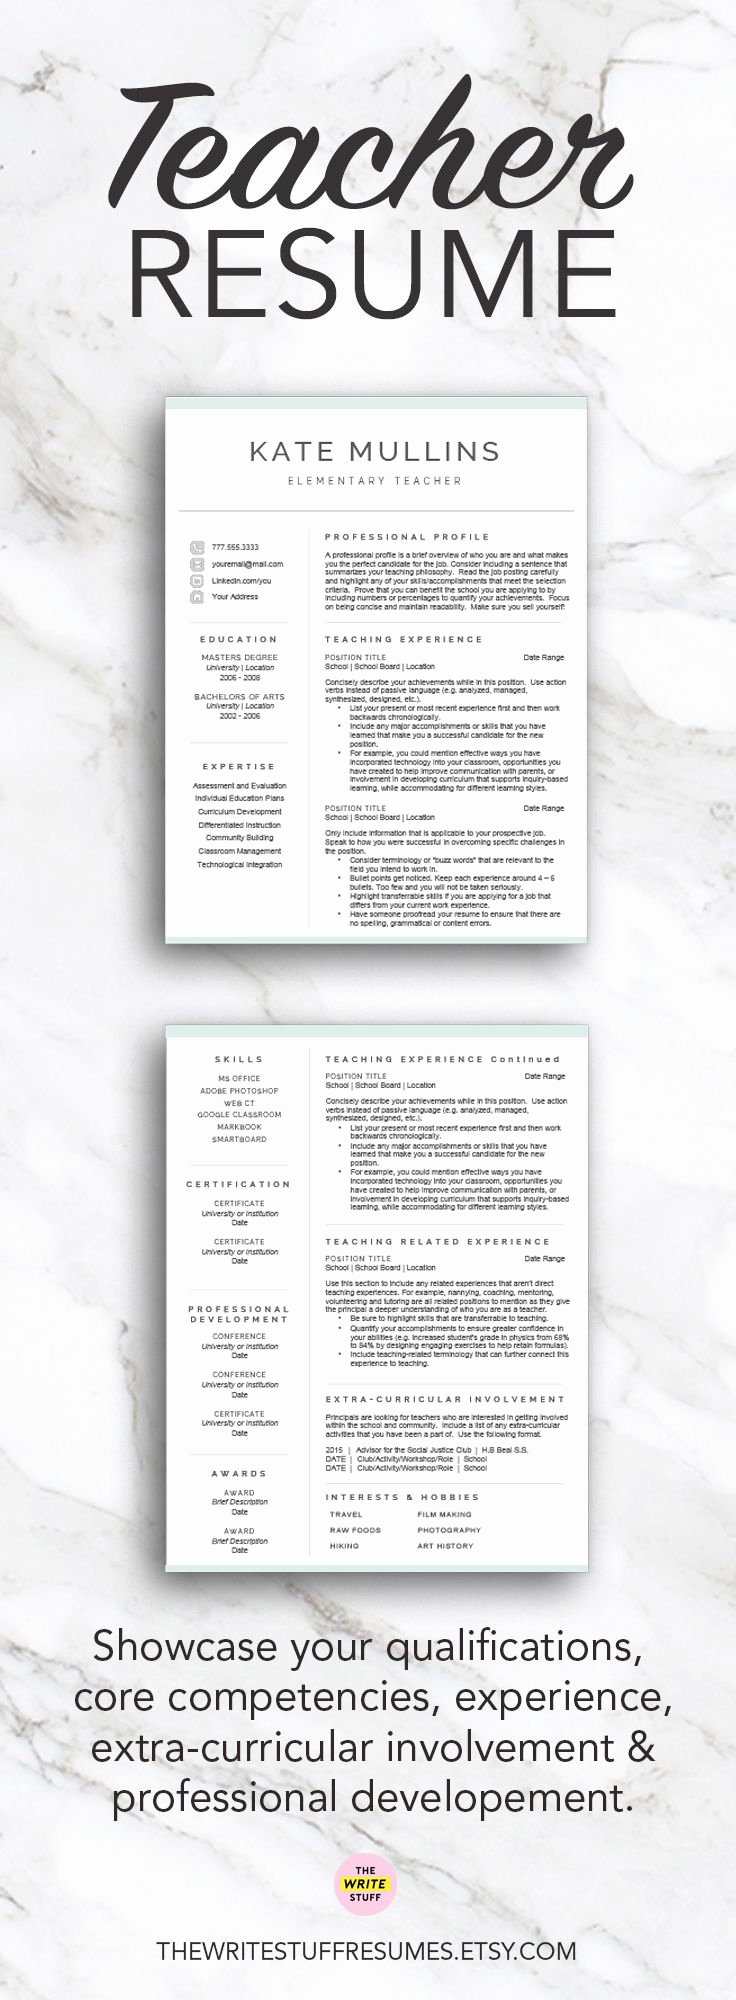 Teacher Resume Template Free Best Of Best 25 Teacher Resume Template Ideas On Pinterest